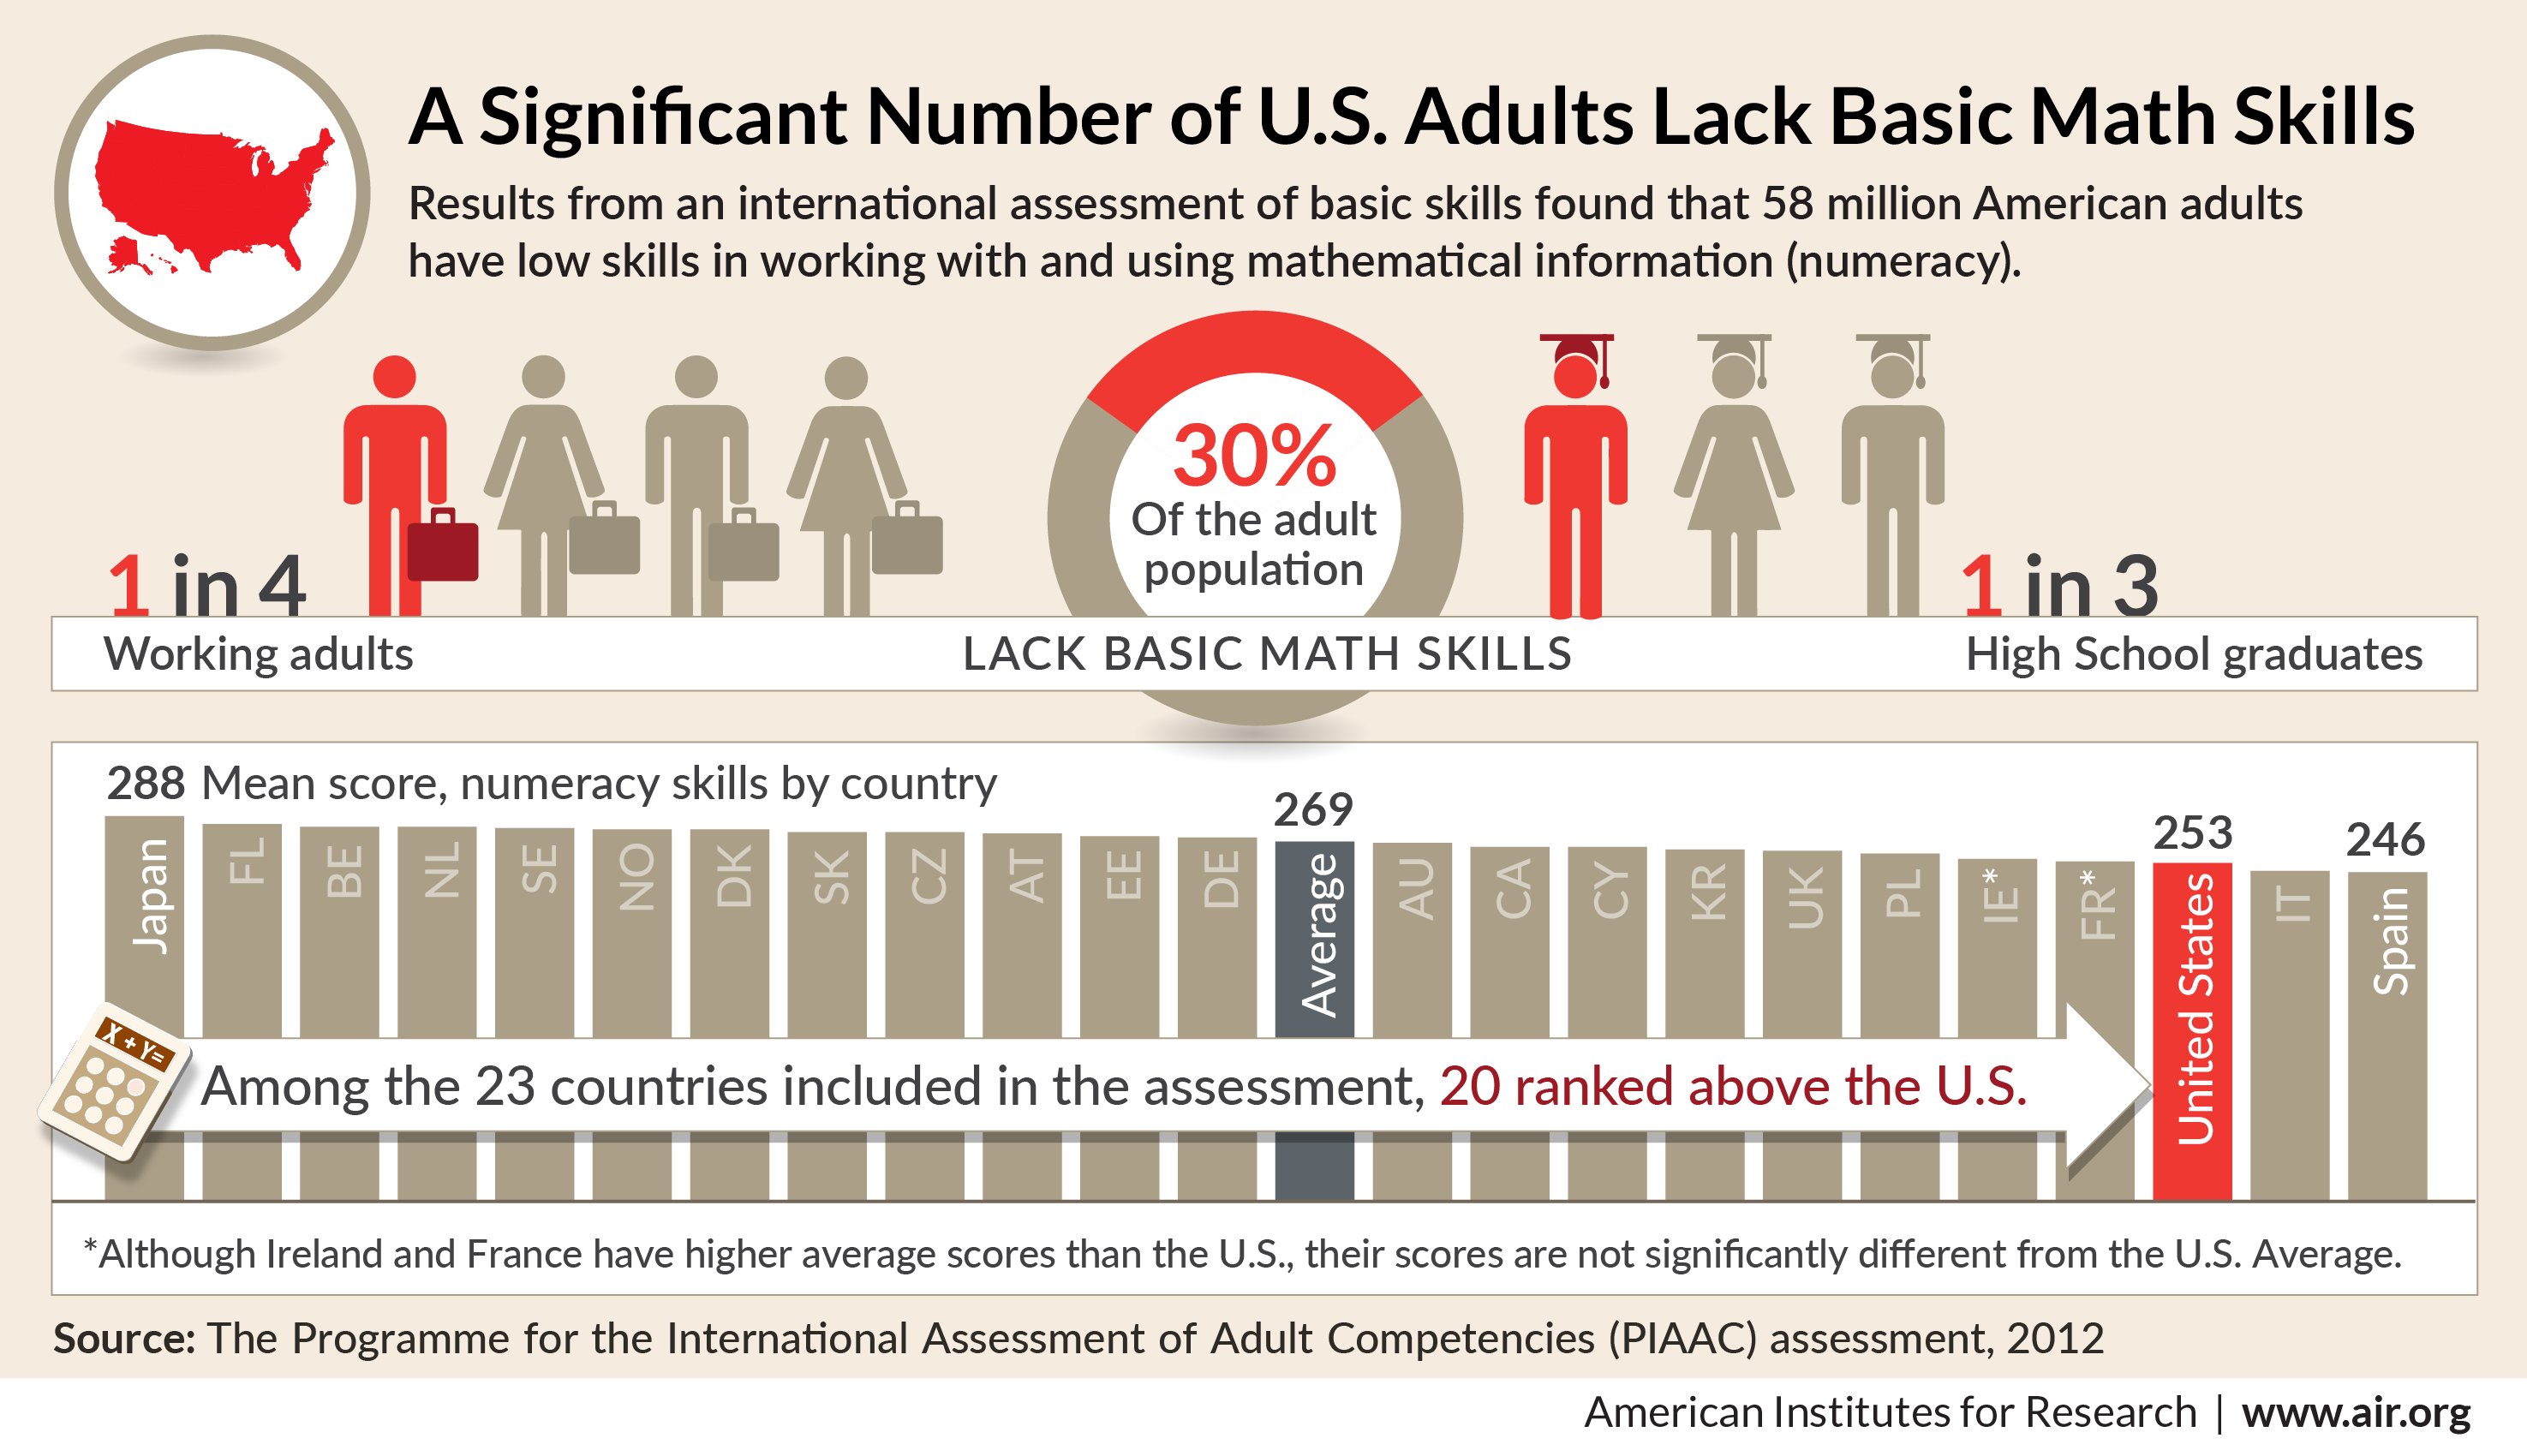 A significant number of U.S. adults lack basic math skills